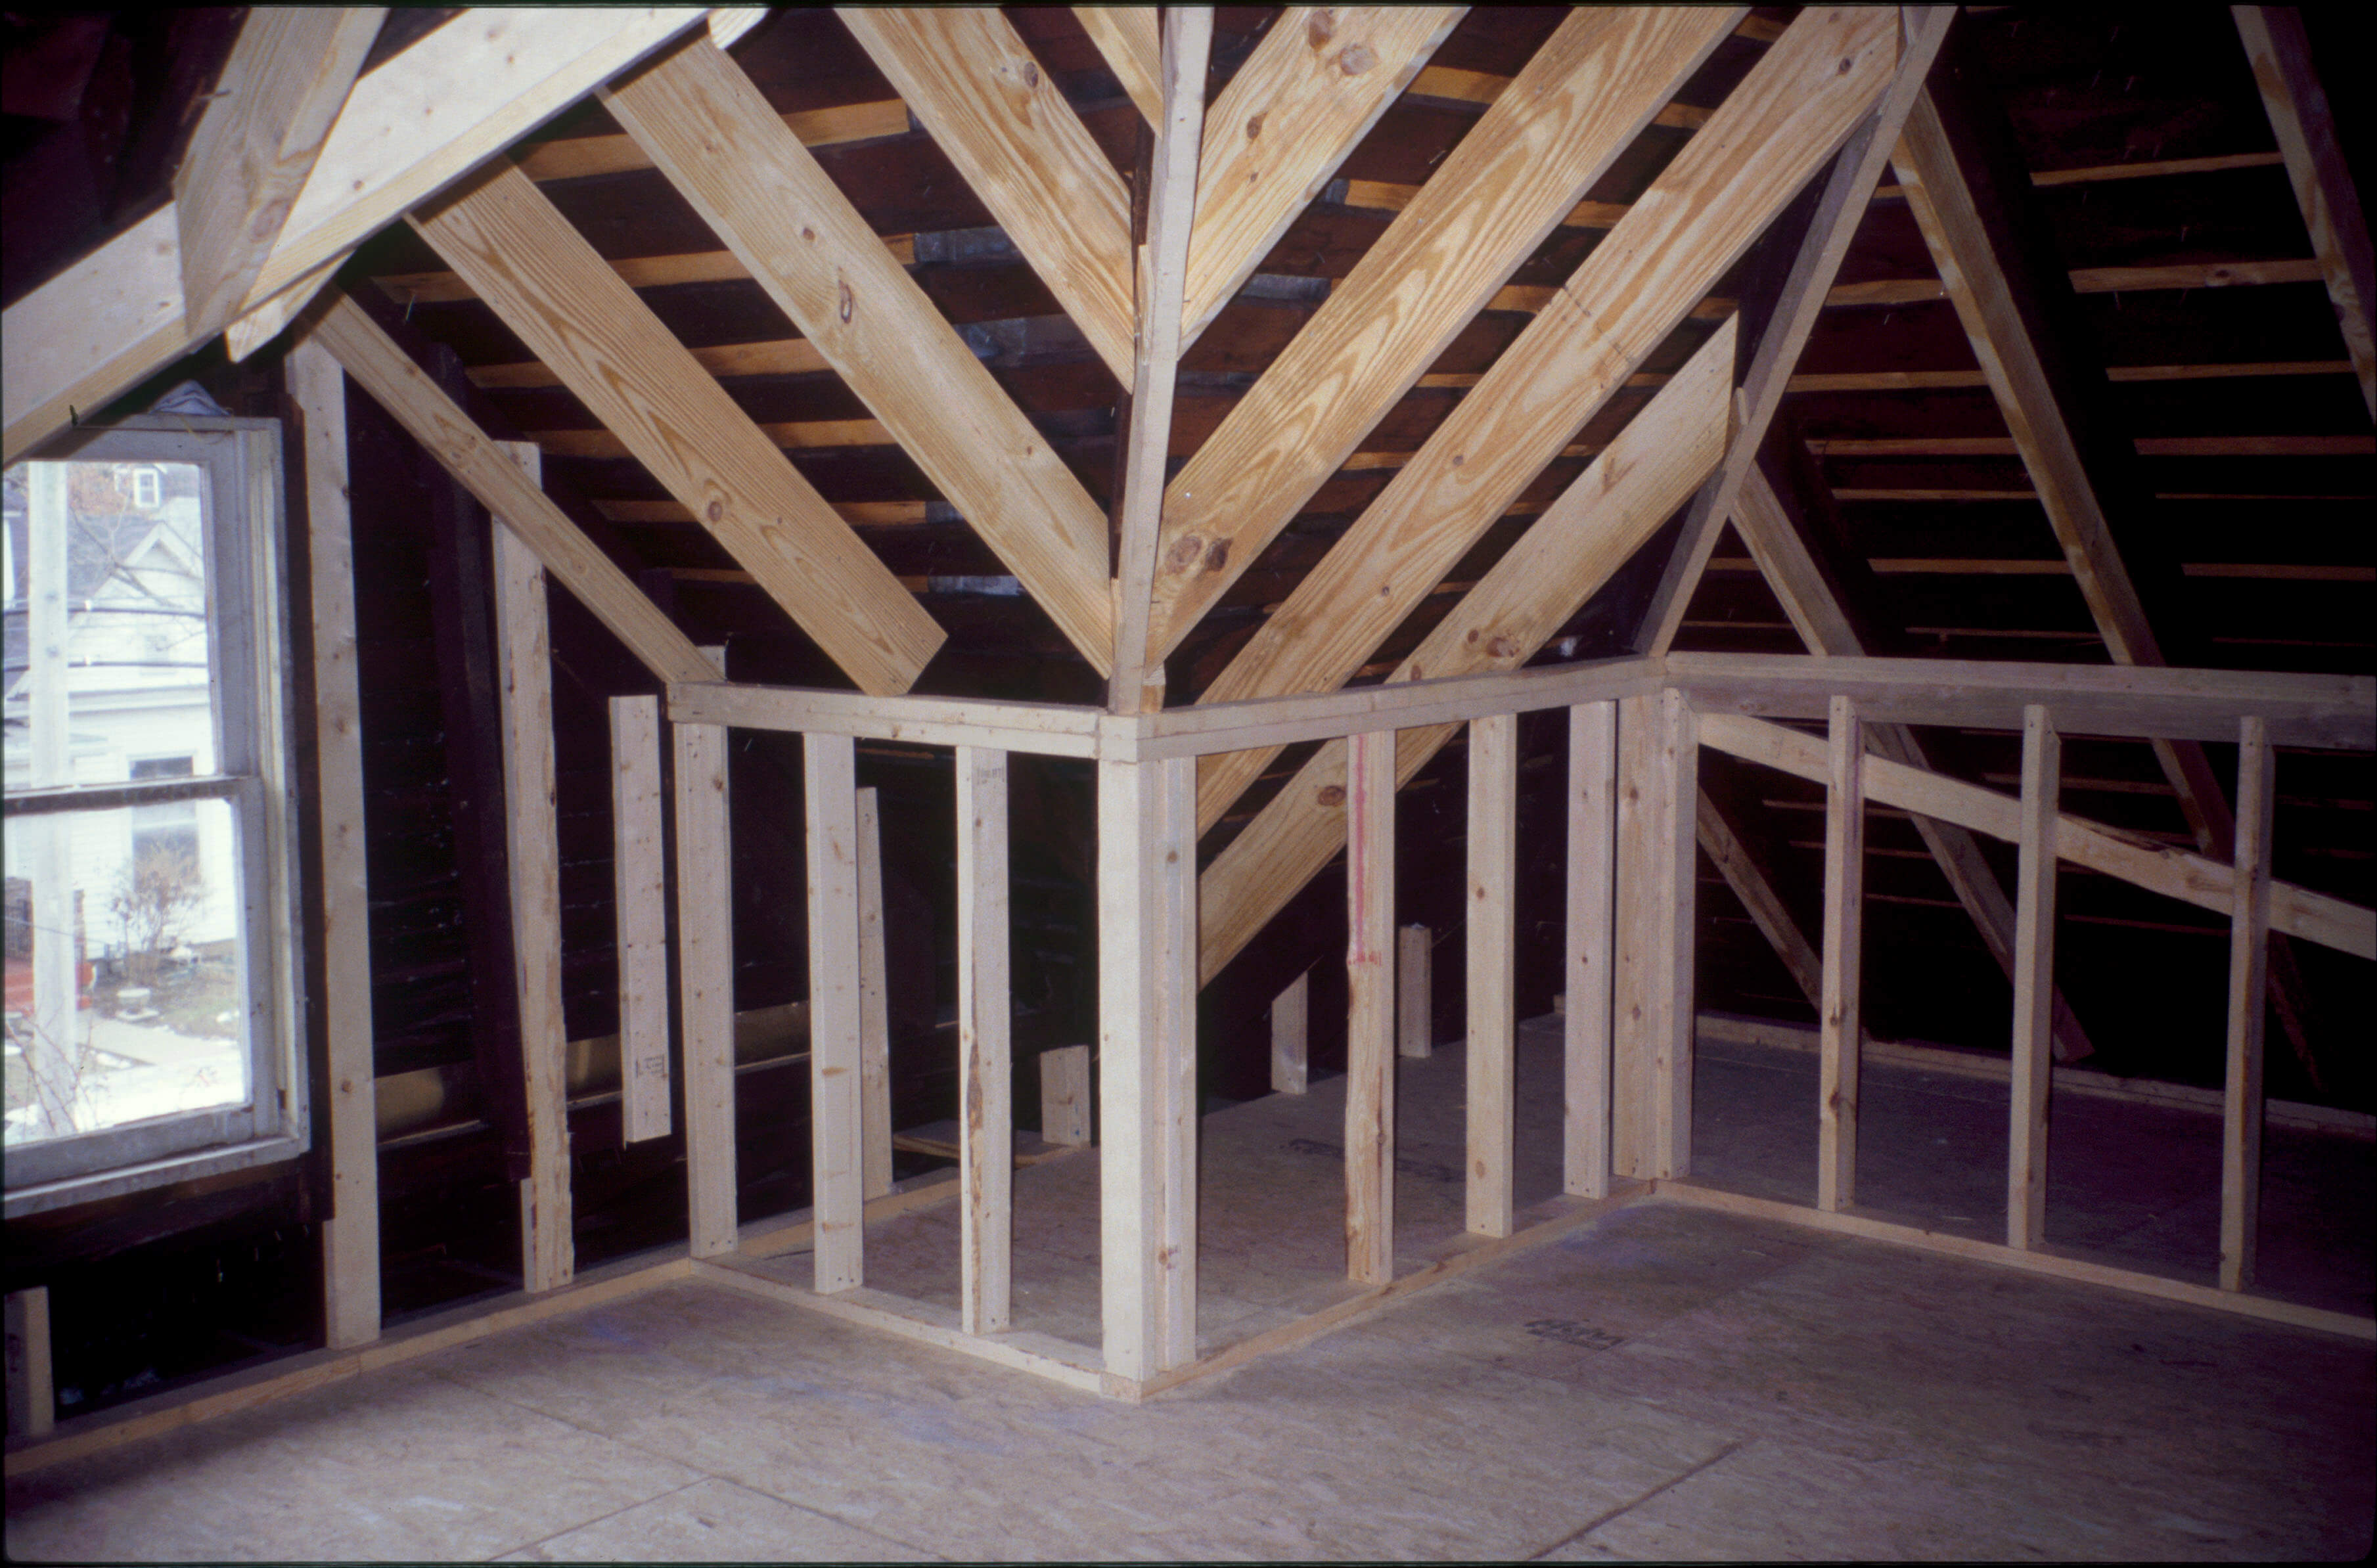 Attic Renovation Or Attic Conversion Webinar Taylor Made Plans